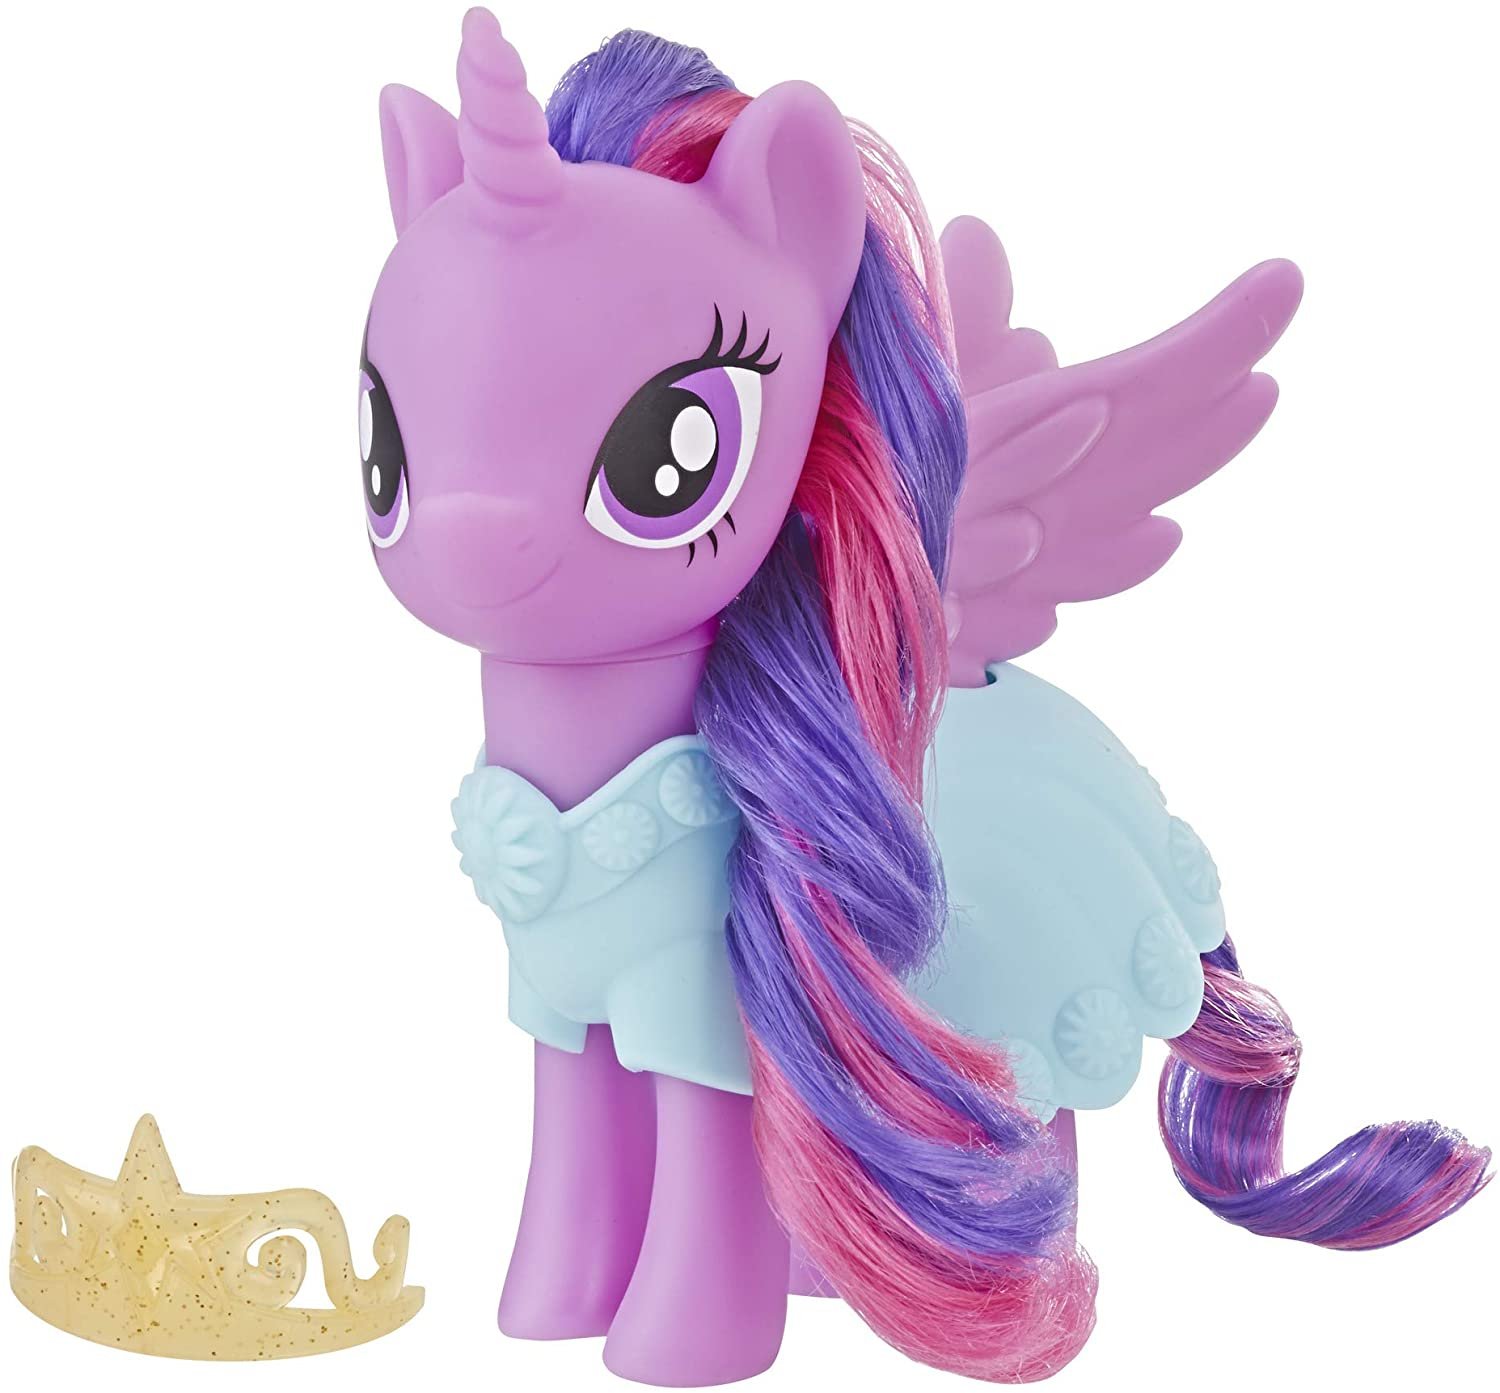 MLP Princess Twilight Sparkle Snap-on Fashion Figure 2